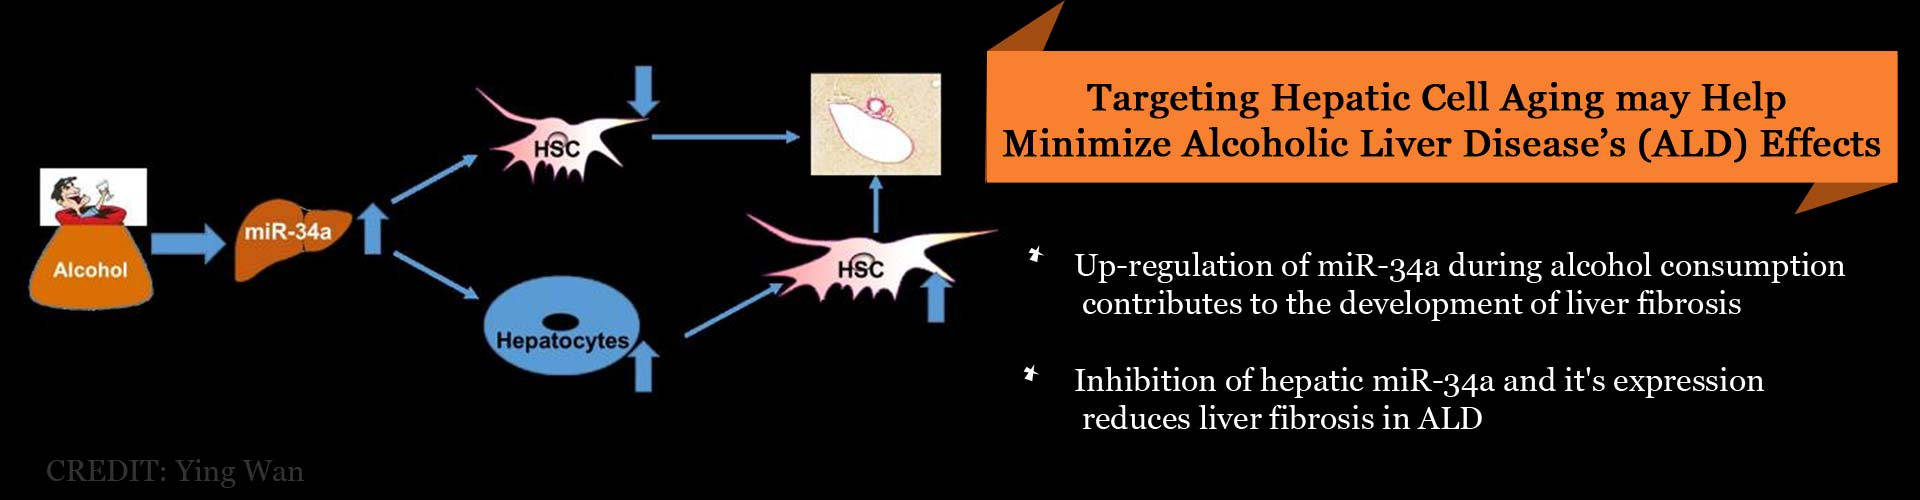 New Targets Identified to Minimize Alcoholic Liver Disease's Ill Effects